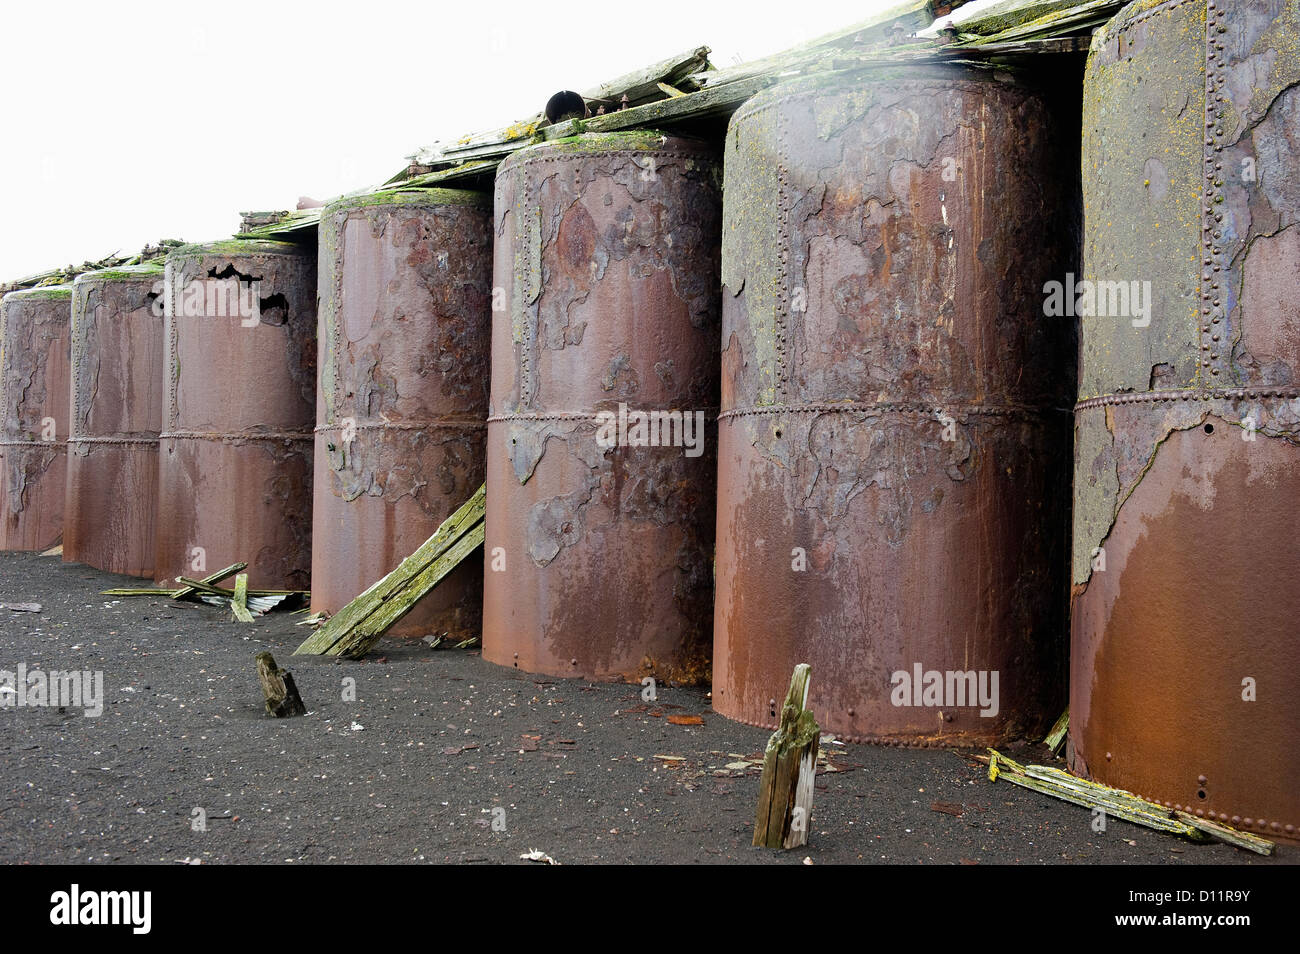 Large Metal Storage Containers In A Row; Whalers Bay Antarctica